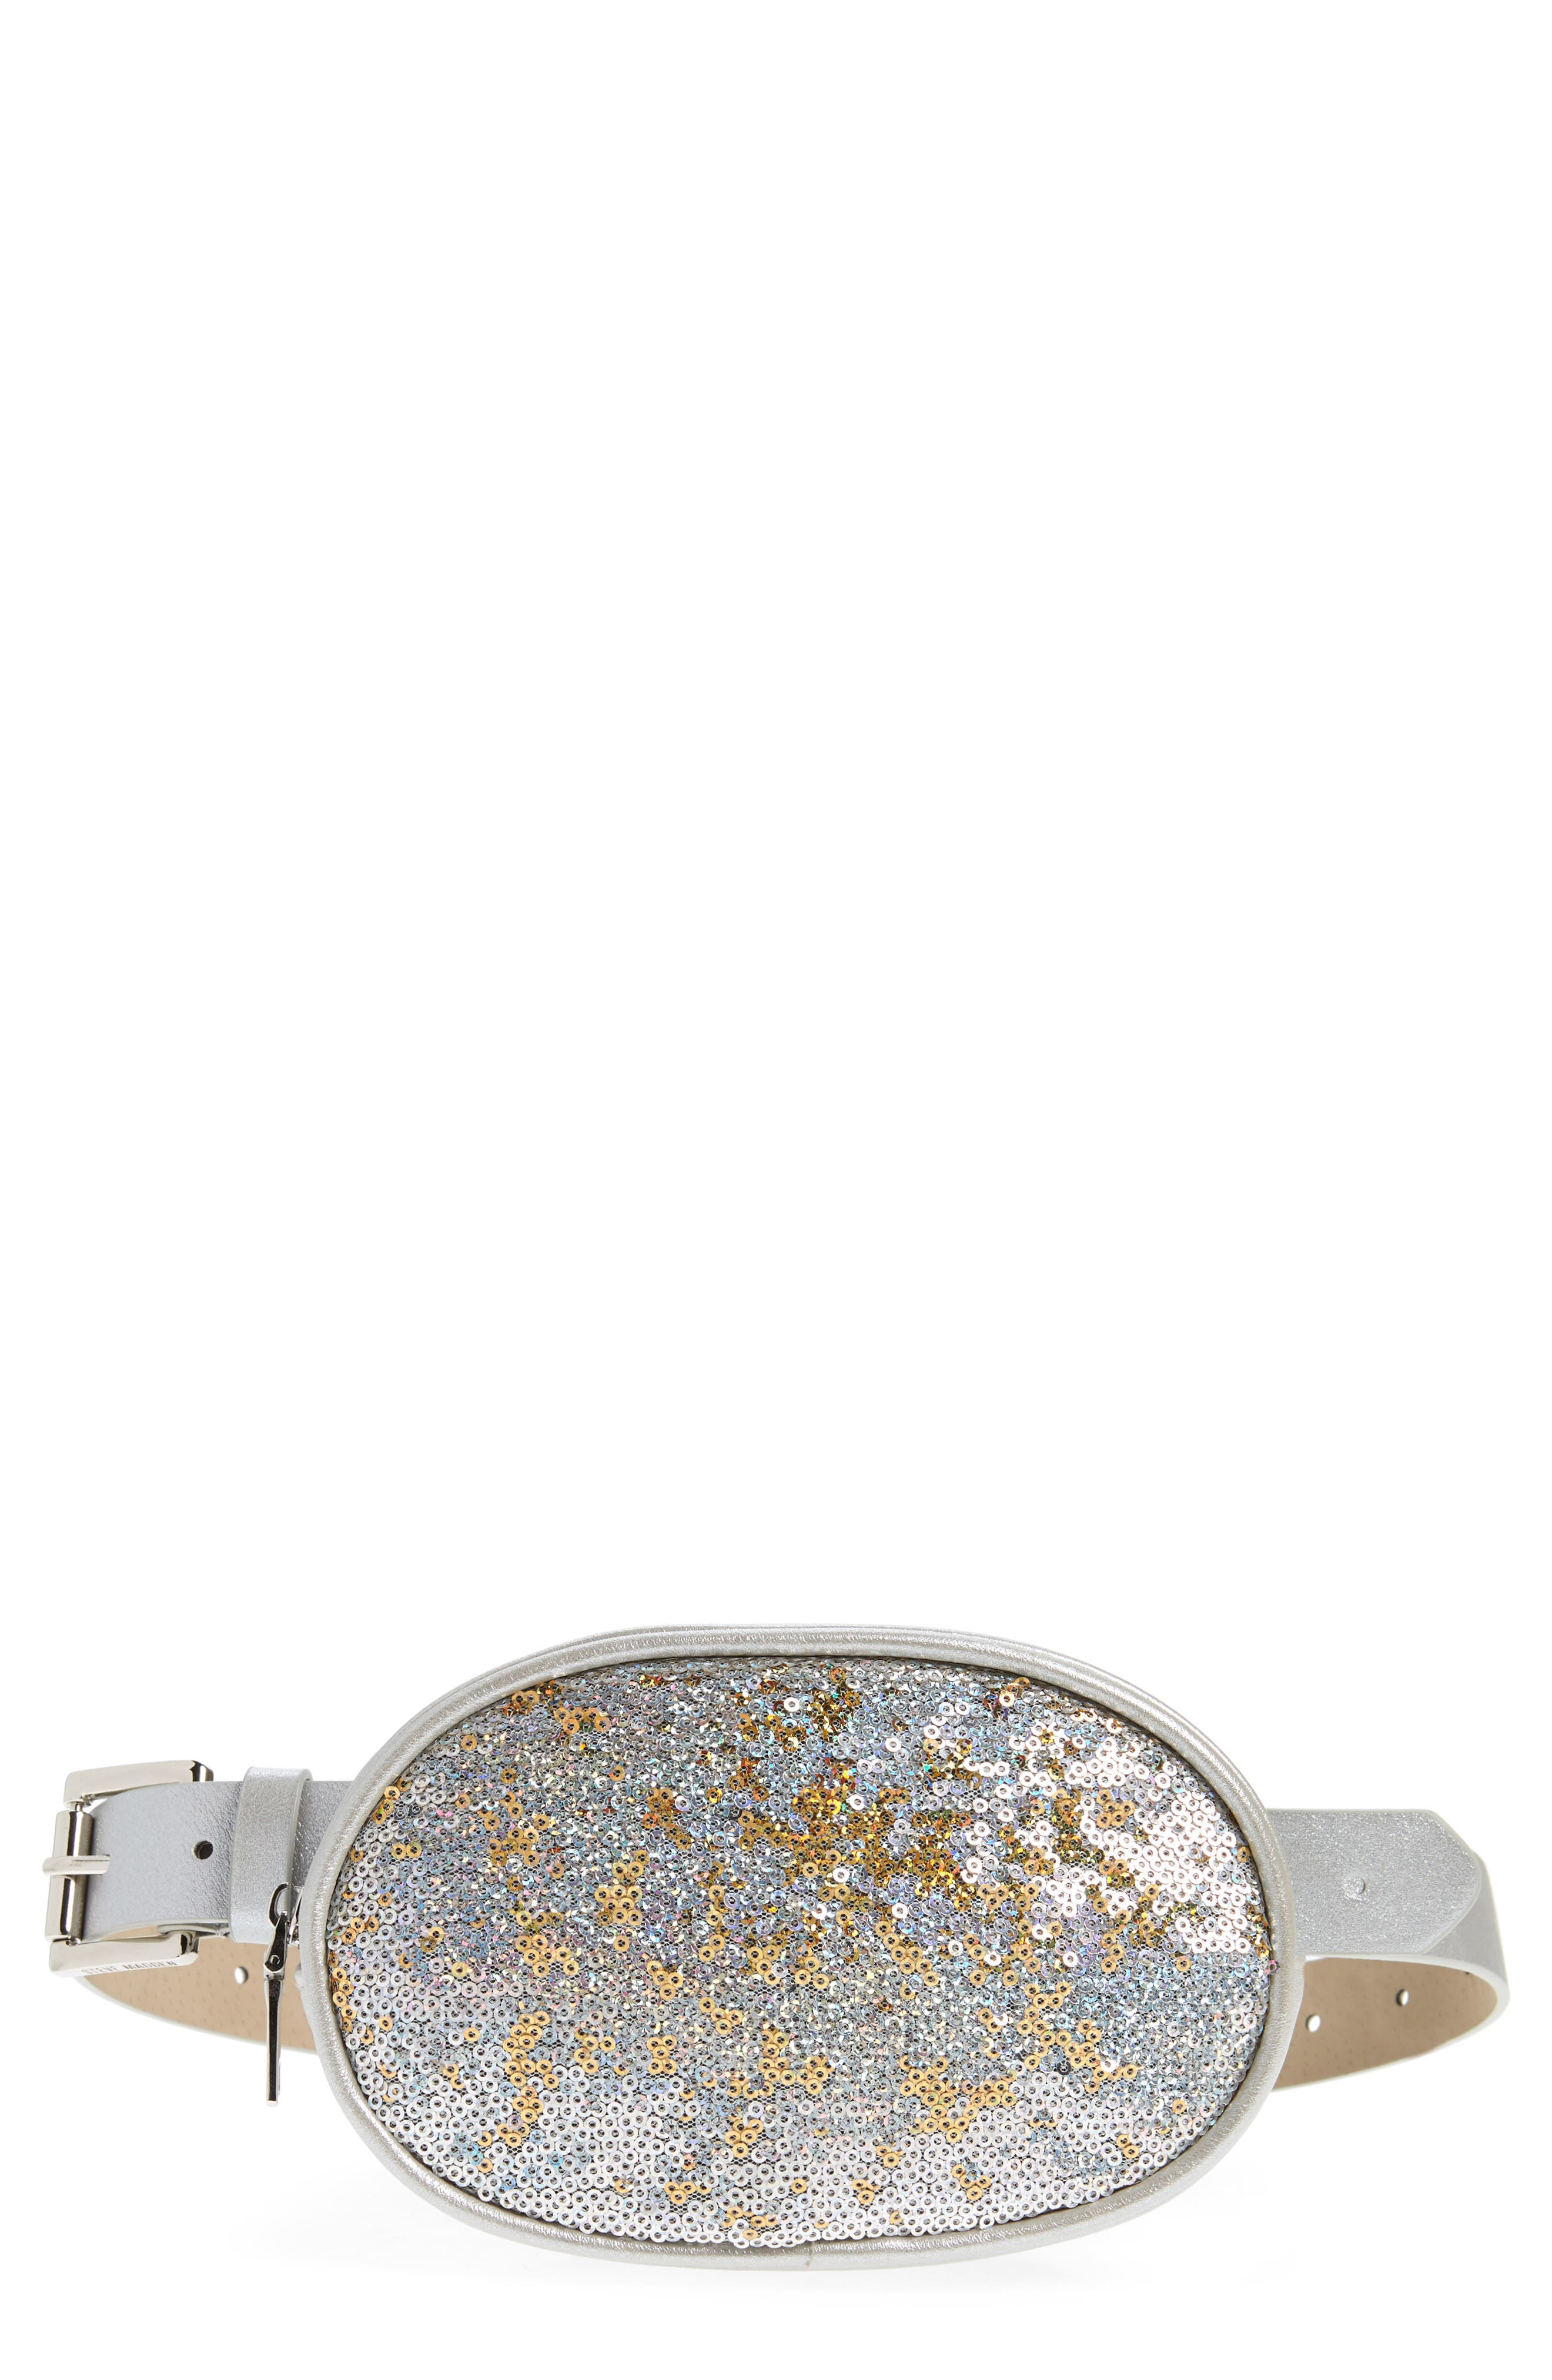 Sequin Faux Leather Belt Bag,                         Main,                         color, SILVER